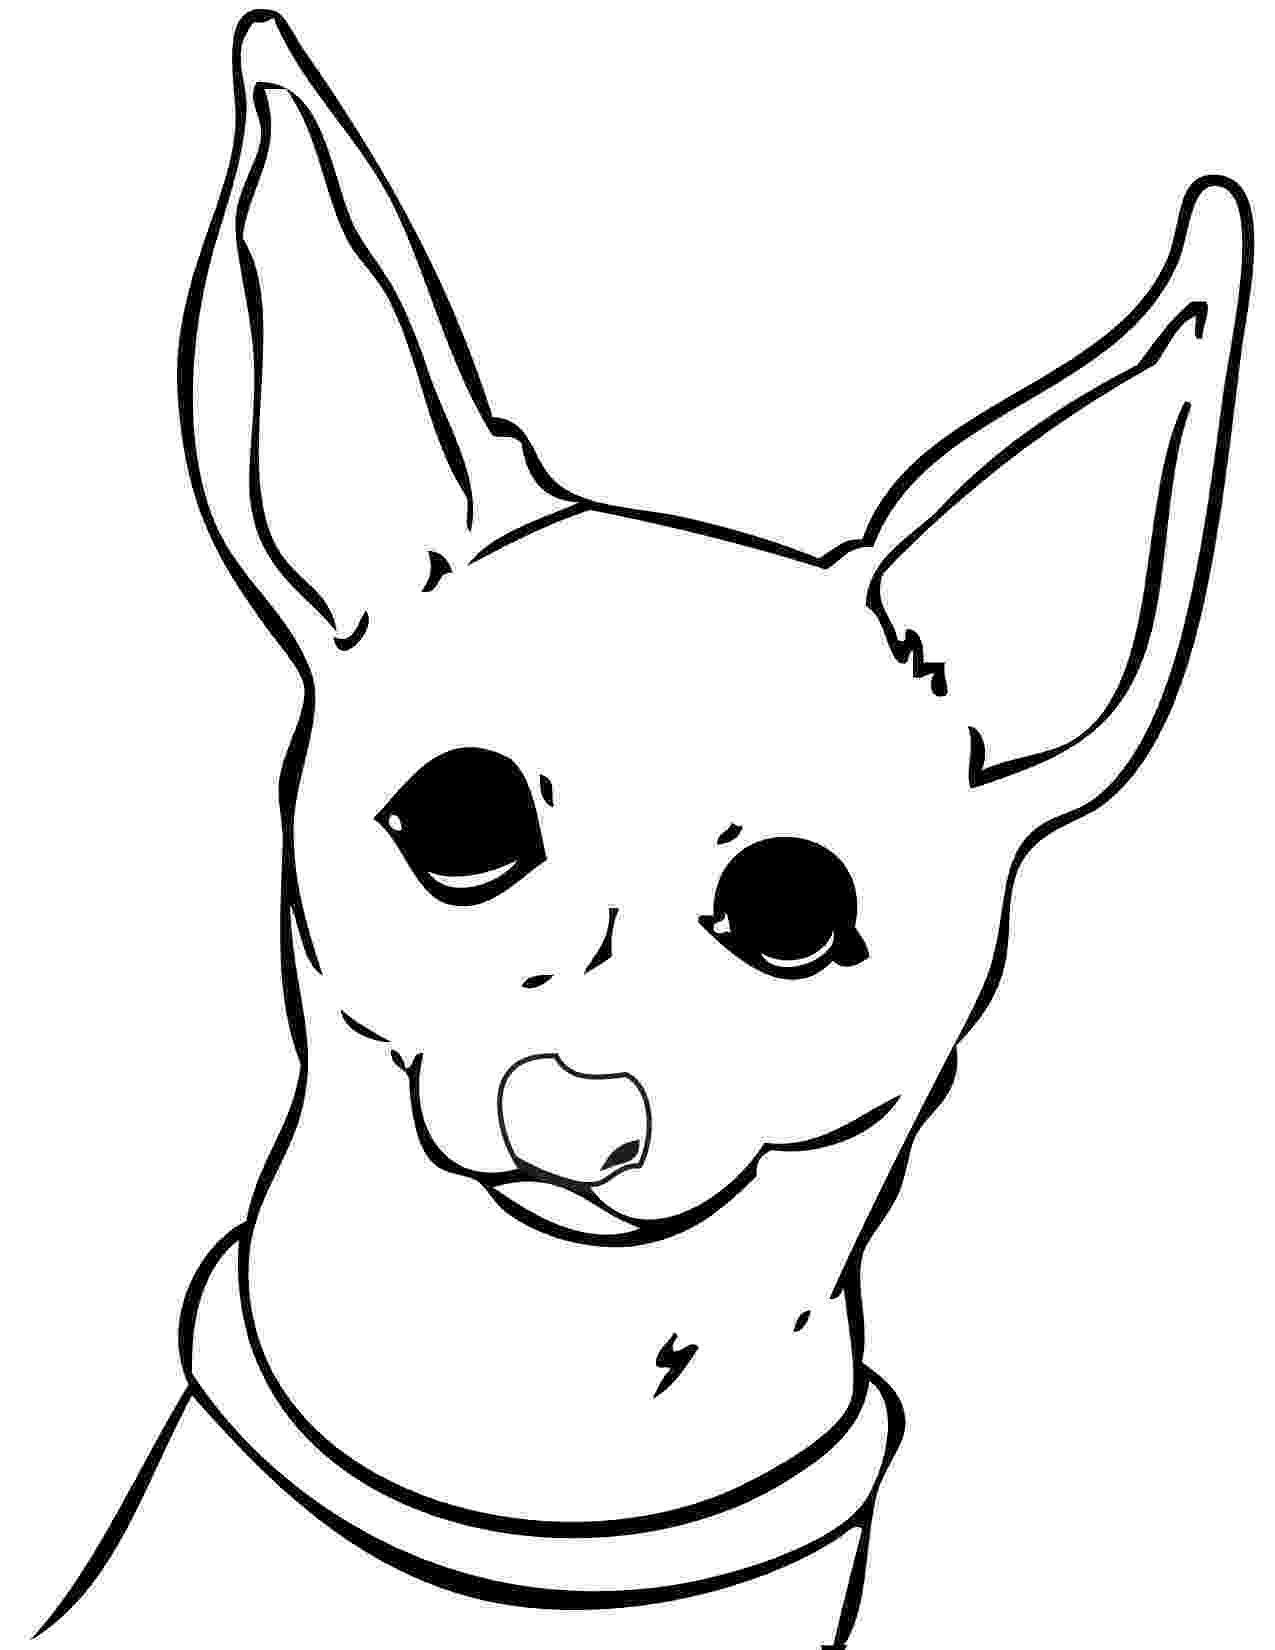 chihuahua colouring pages chihuahua coloring pages coloring home chihuahua colouring pages